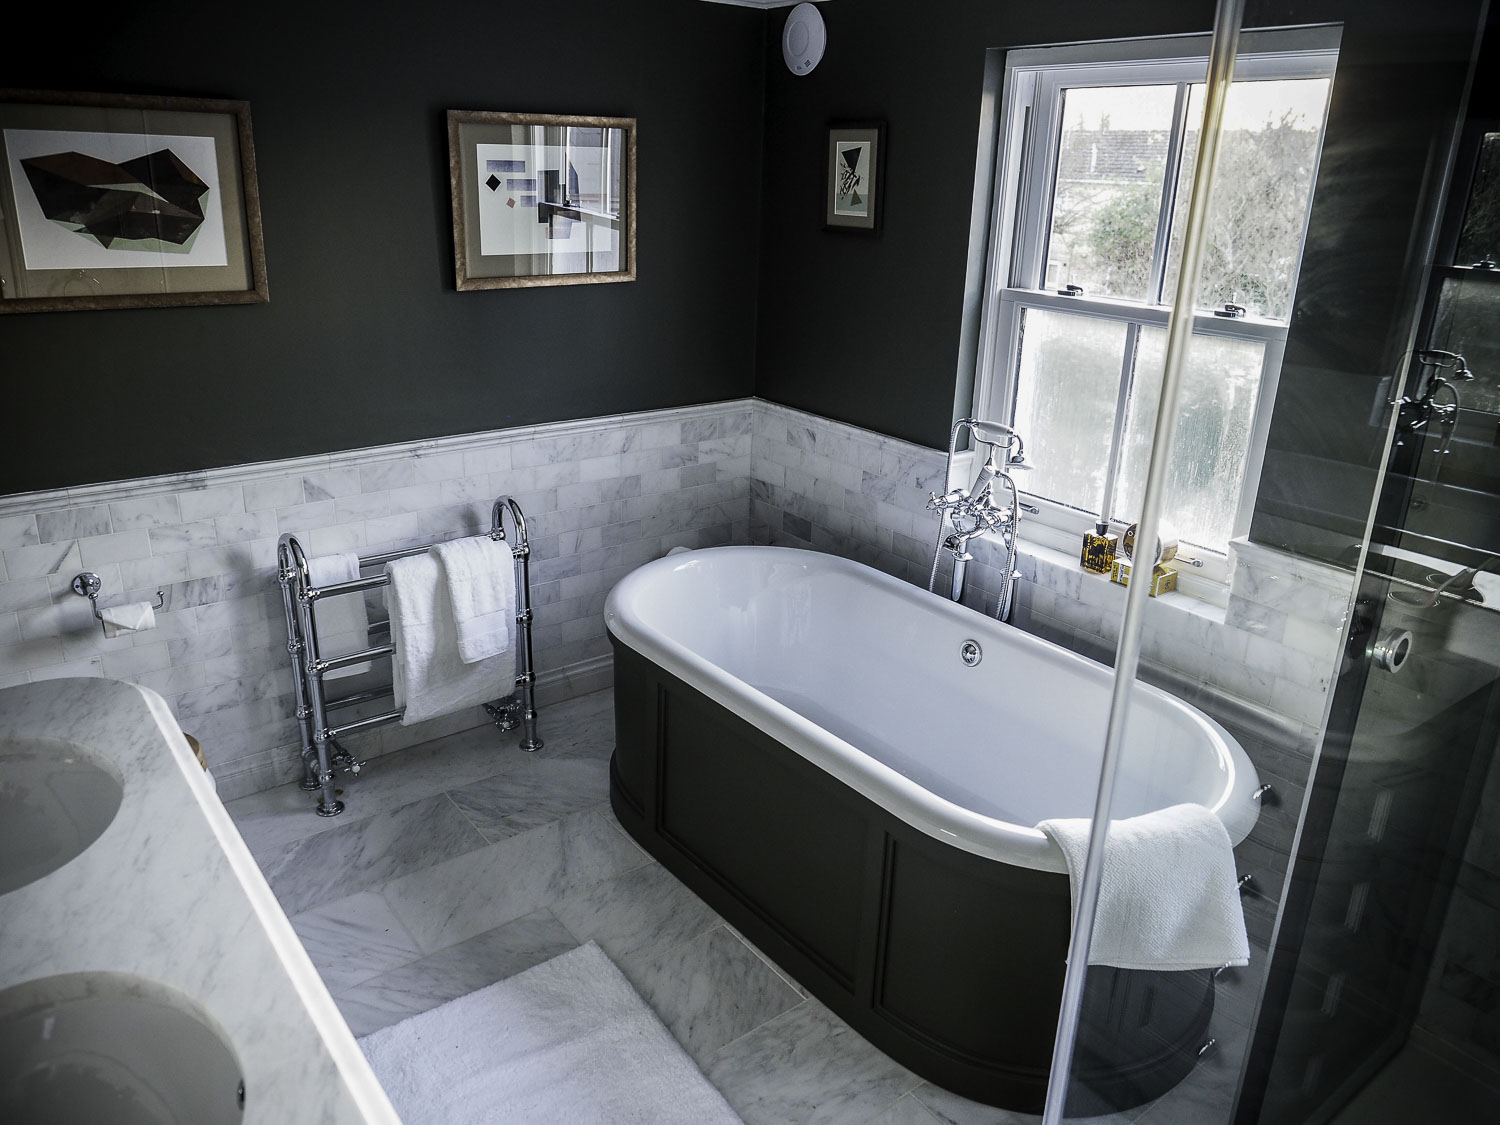 marlborough_road-master_bathroom-1500pw-250kb.jpg